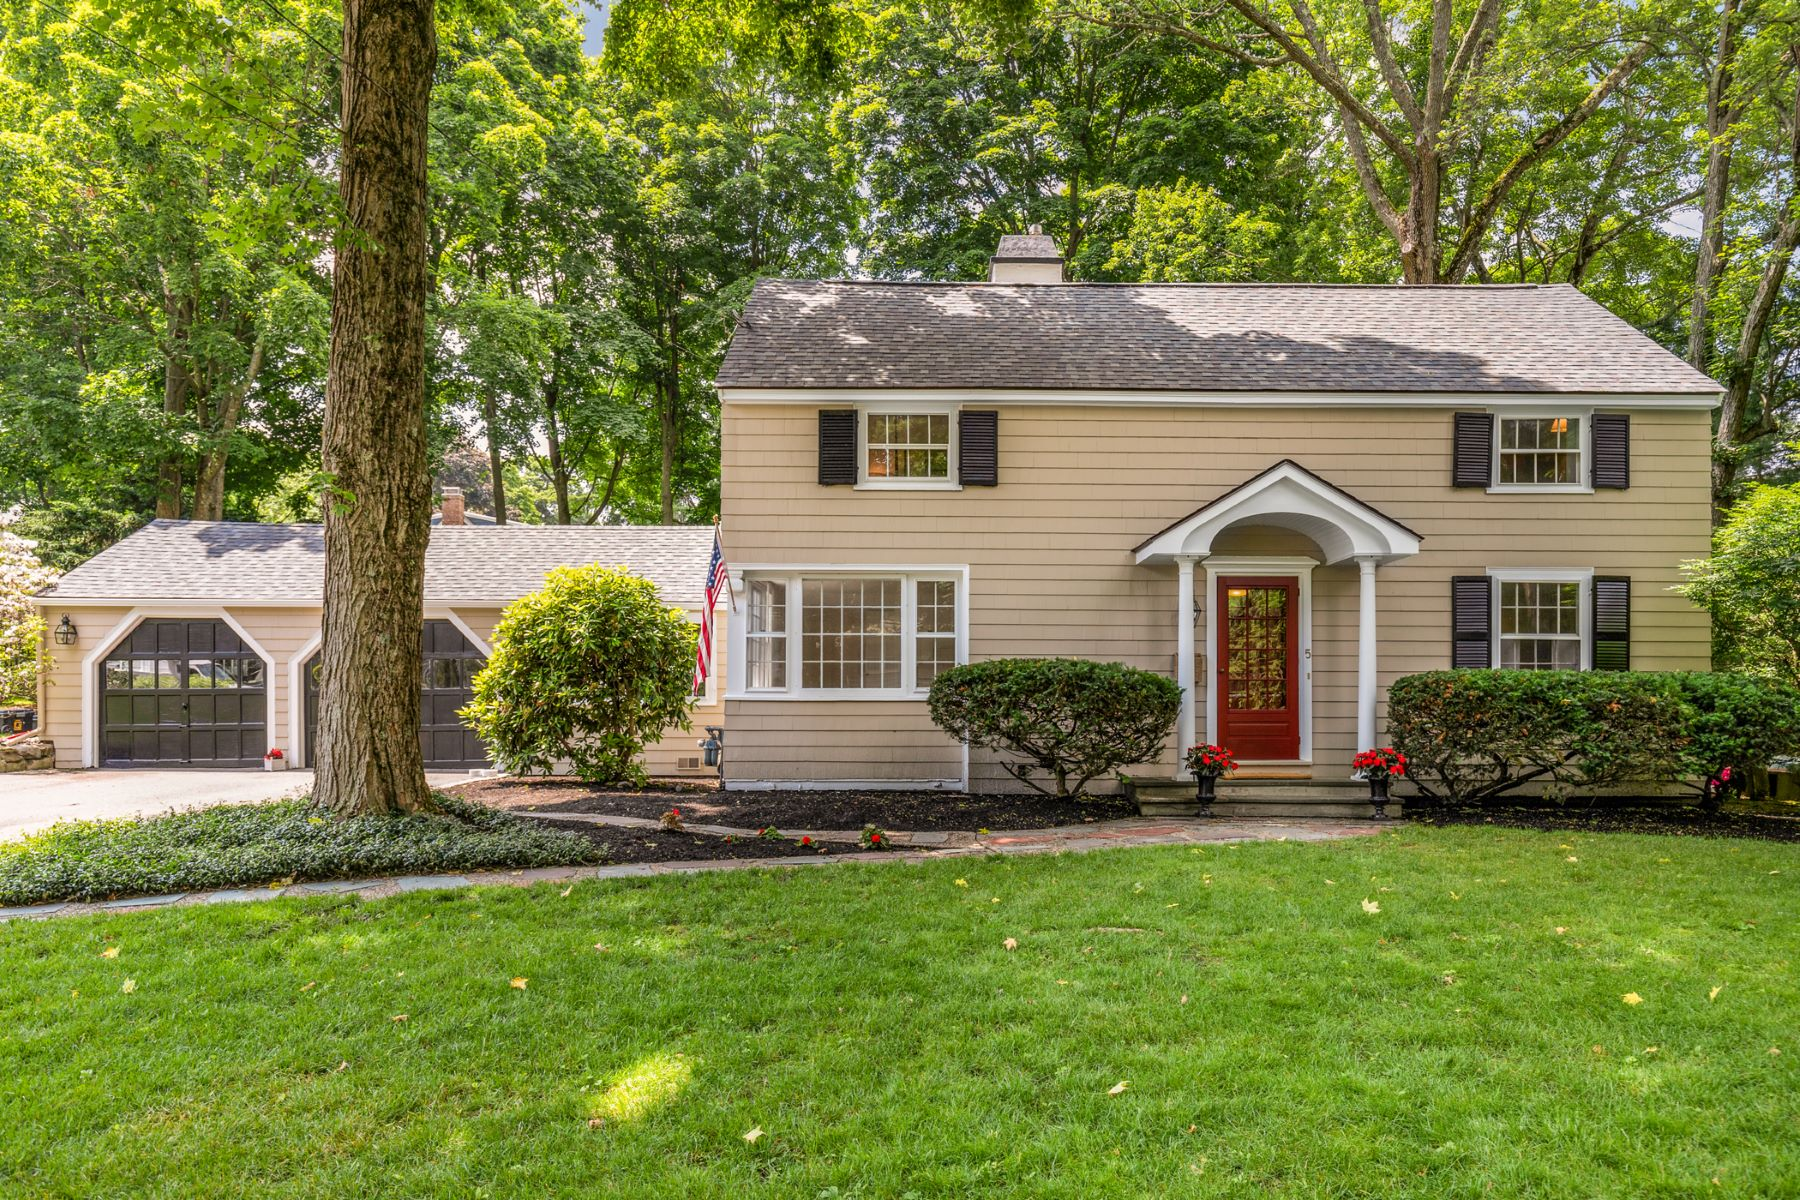 Single Family Homes for Active at 5 Woodland Road, Lexington 5 Woodland Rd Lexington, Massachusetts 02420 United States